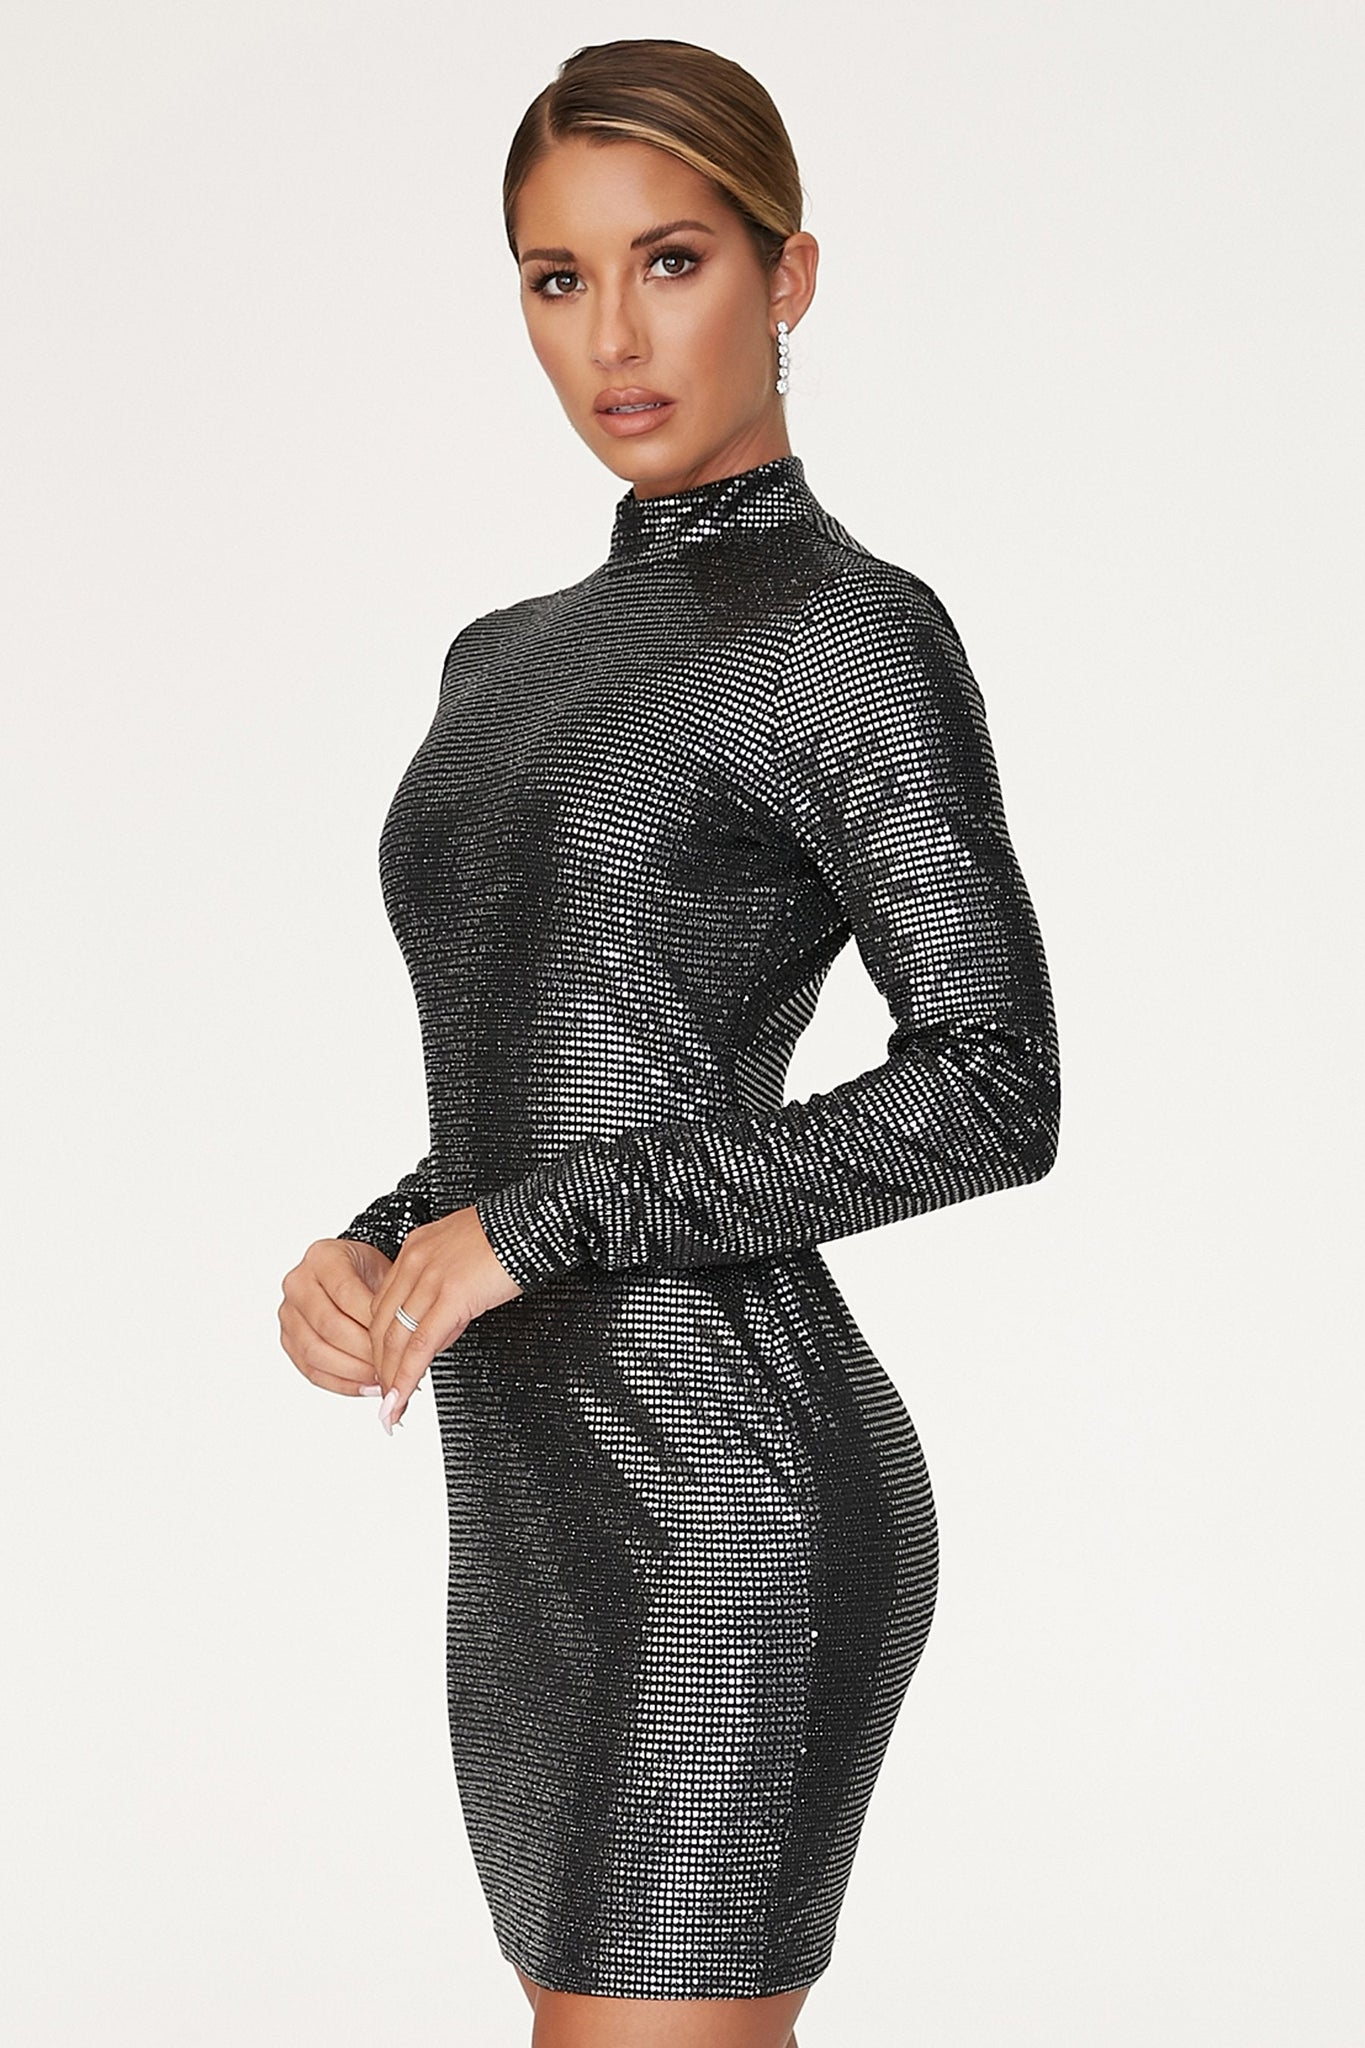 Gianna High Neck Long Sleeve Dress - Black - MESHKI